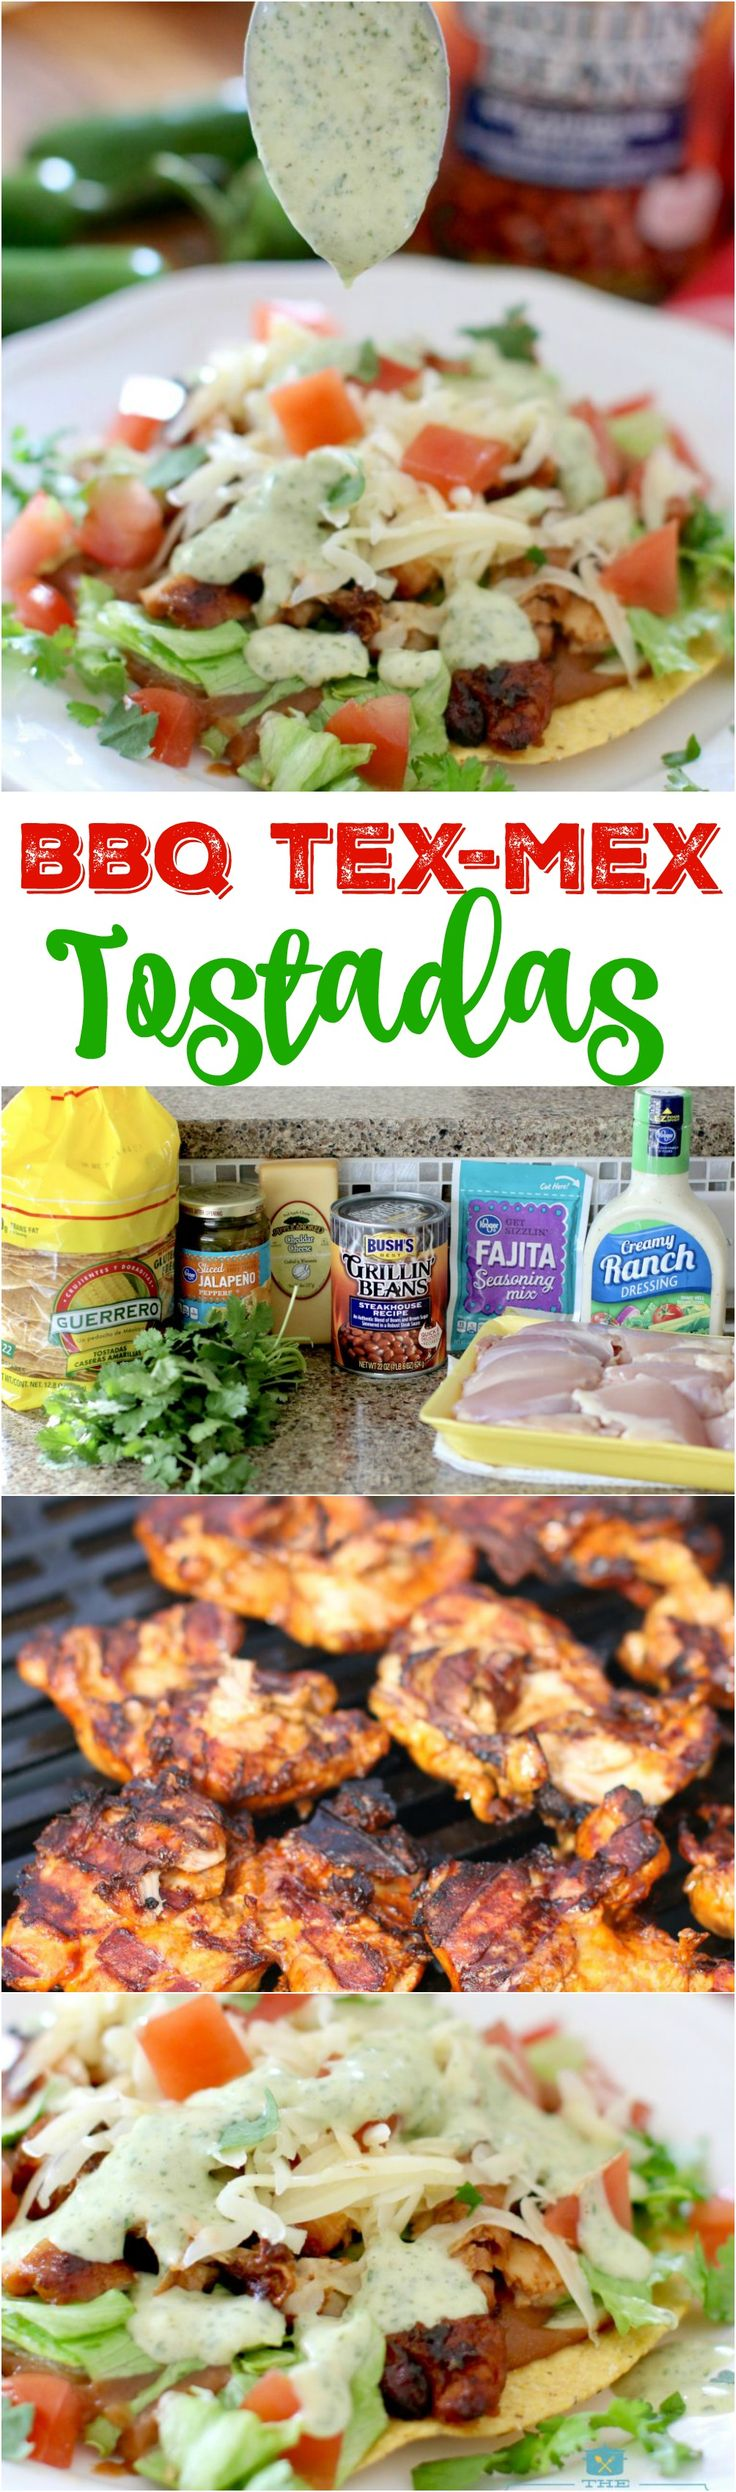 BBQ Tex-Mex Tostadas are so simple but the simple ingredients combined have the MOST amazing flavor! We absolutely loved this. The chicken marinade was perfection and the cilantro ranch sauce was SO good with this! Using blended BUSH'S Beans is genius! #bushsbeans #ad